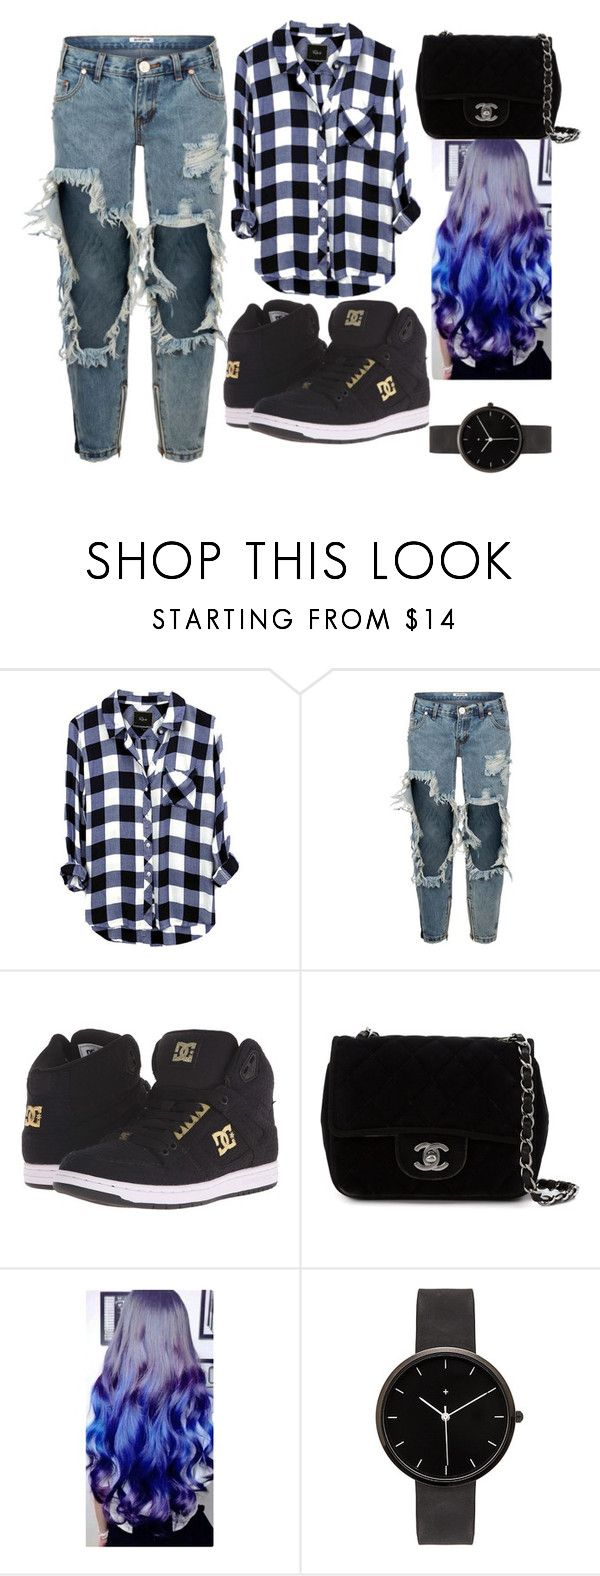 """Untitled #14"" by diana-elena-2 ❤ liked on Polyvore featuring OneTeaspoon, DC Shoes, Chanel and I Love Ugly"